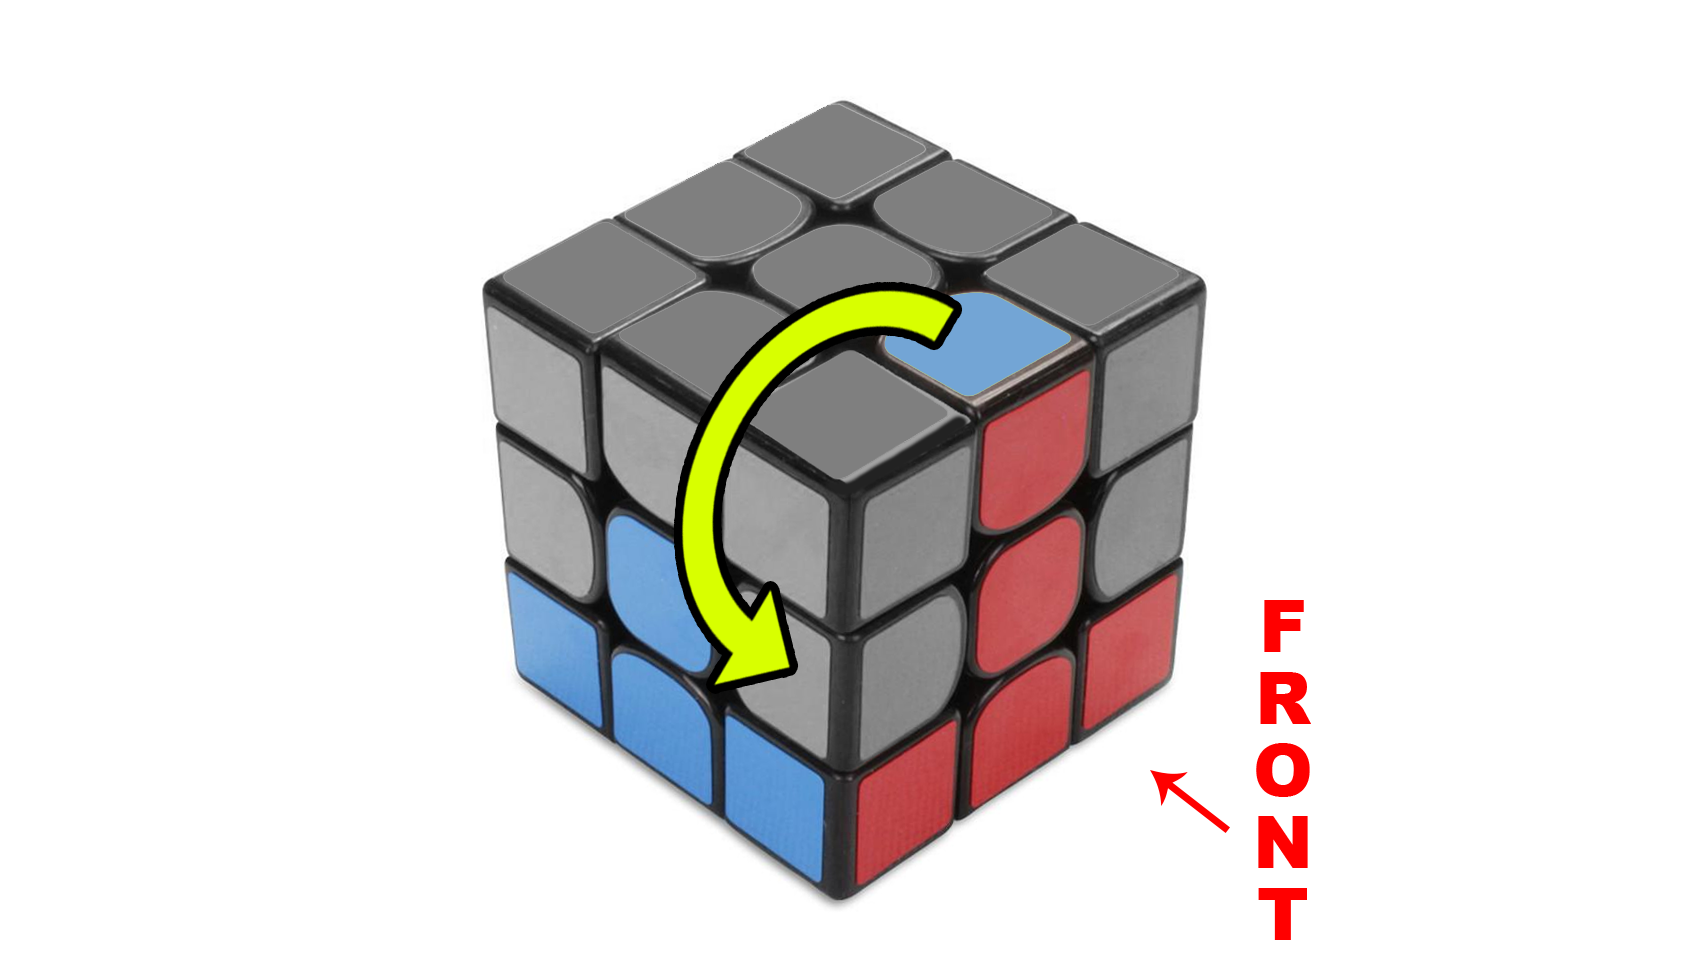 How to solve a Rubik's 3x3 - Step 3 - The Second Layer - Step 3a